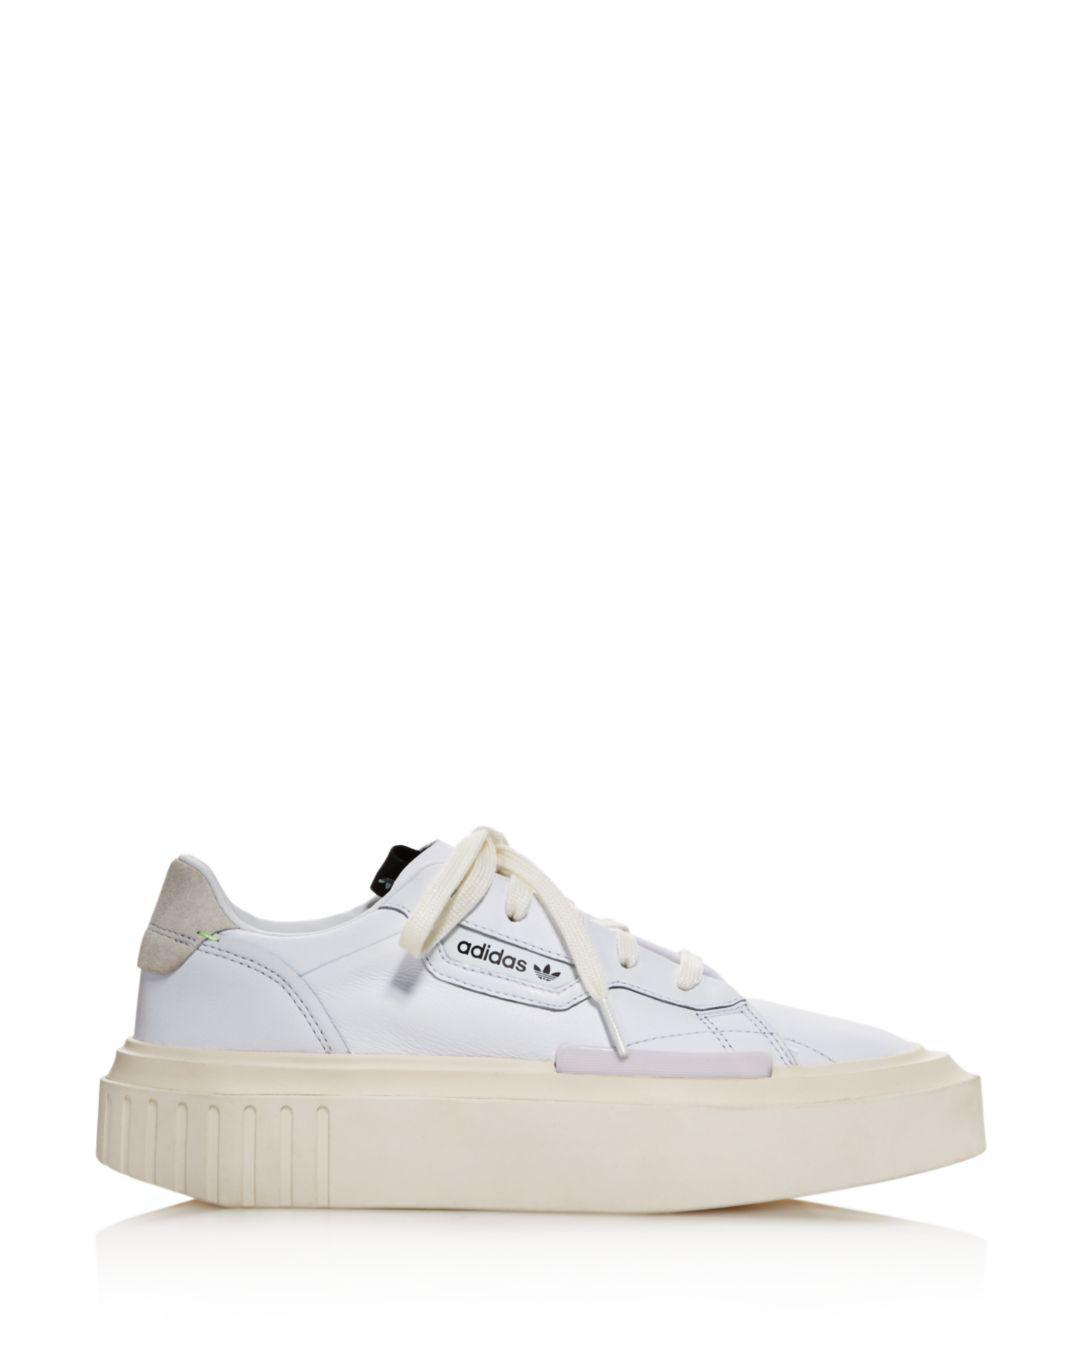 8c5d0caf8 adidas Hypersleek Leather Platform Sneakers in White - Lyst